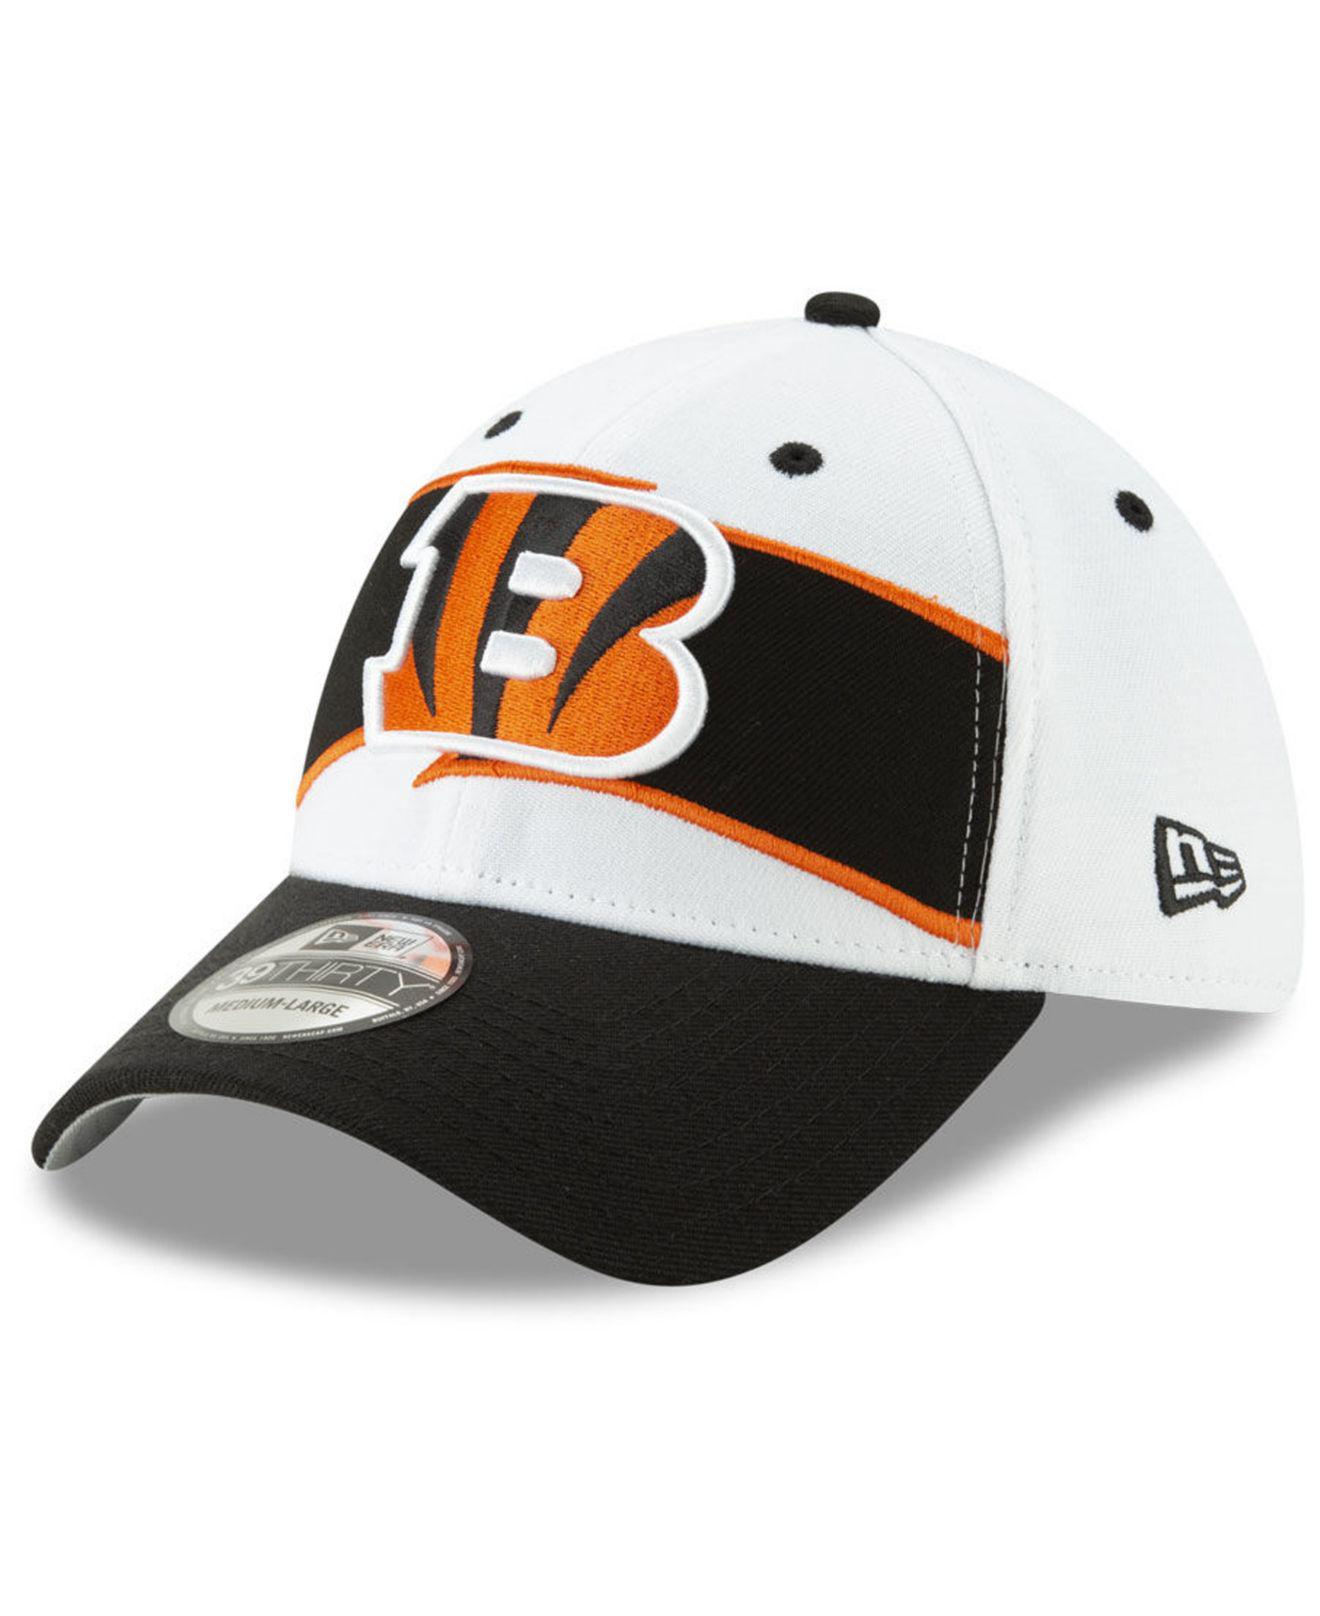 Lyst - Ktz Cincinnati Bengals Thanksgiving 39thirty Cap in Black for Men dd74dfe1d